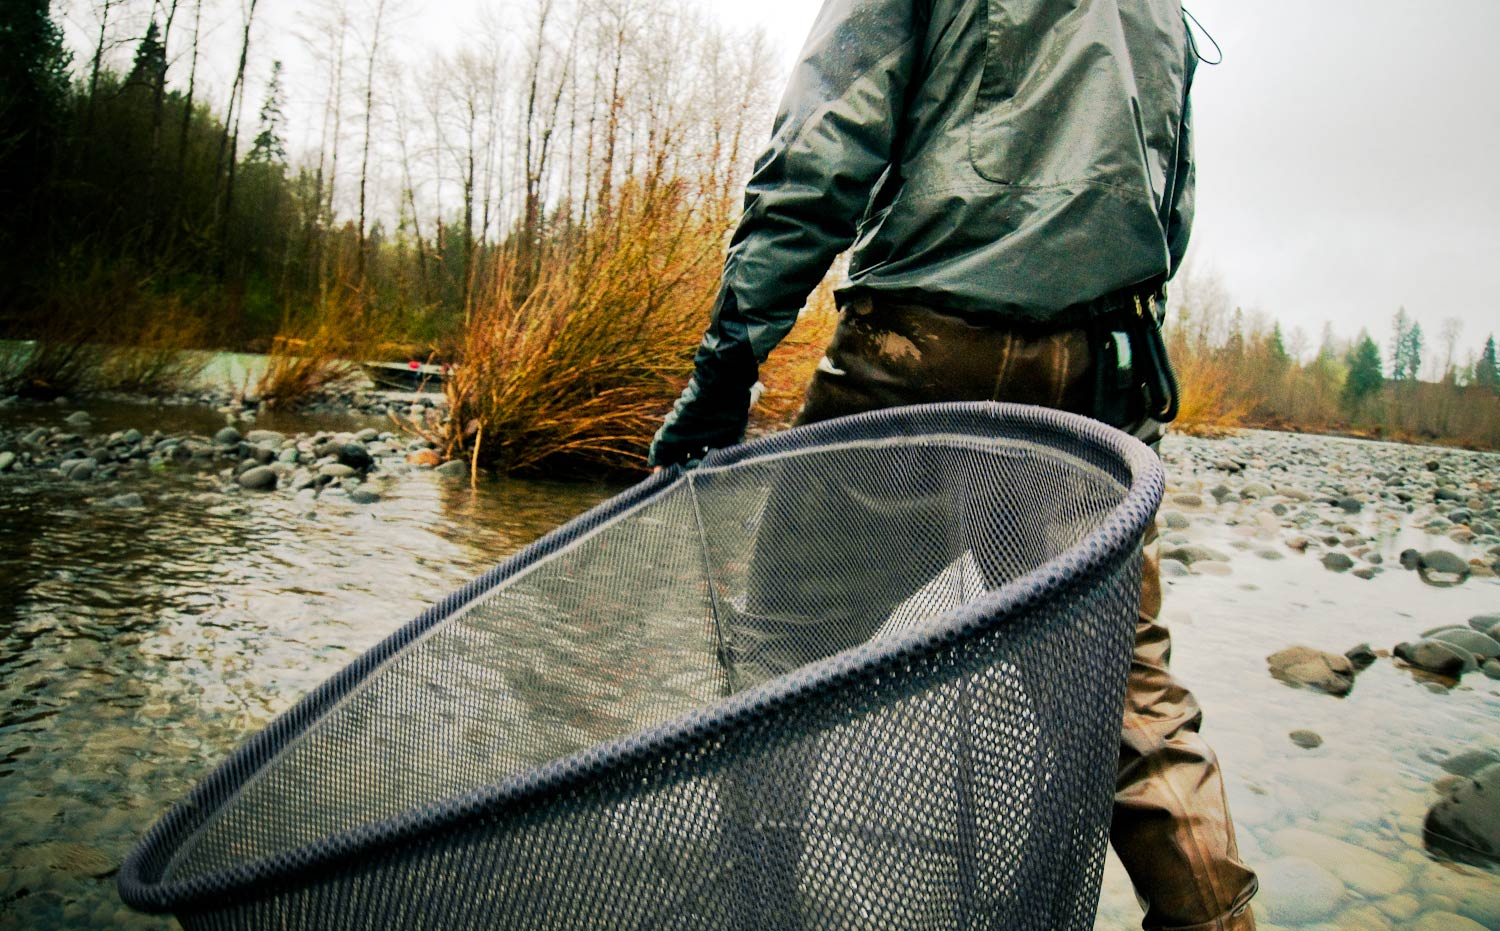 Nets go big or go home fly fishing gink and gasoline for Fly fishing net